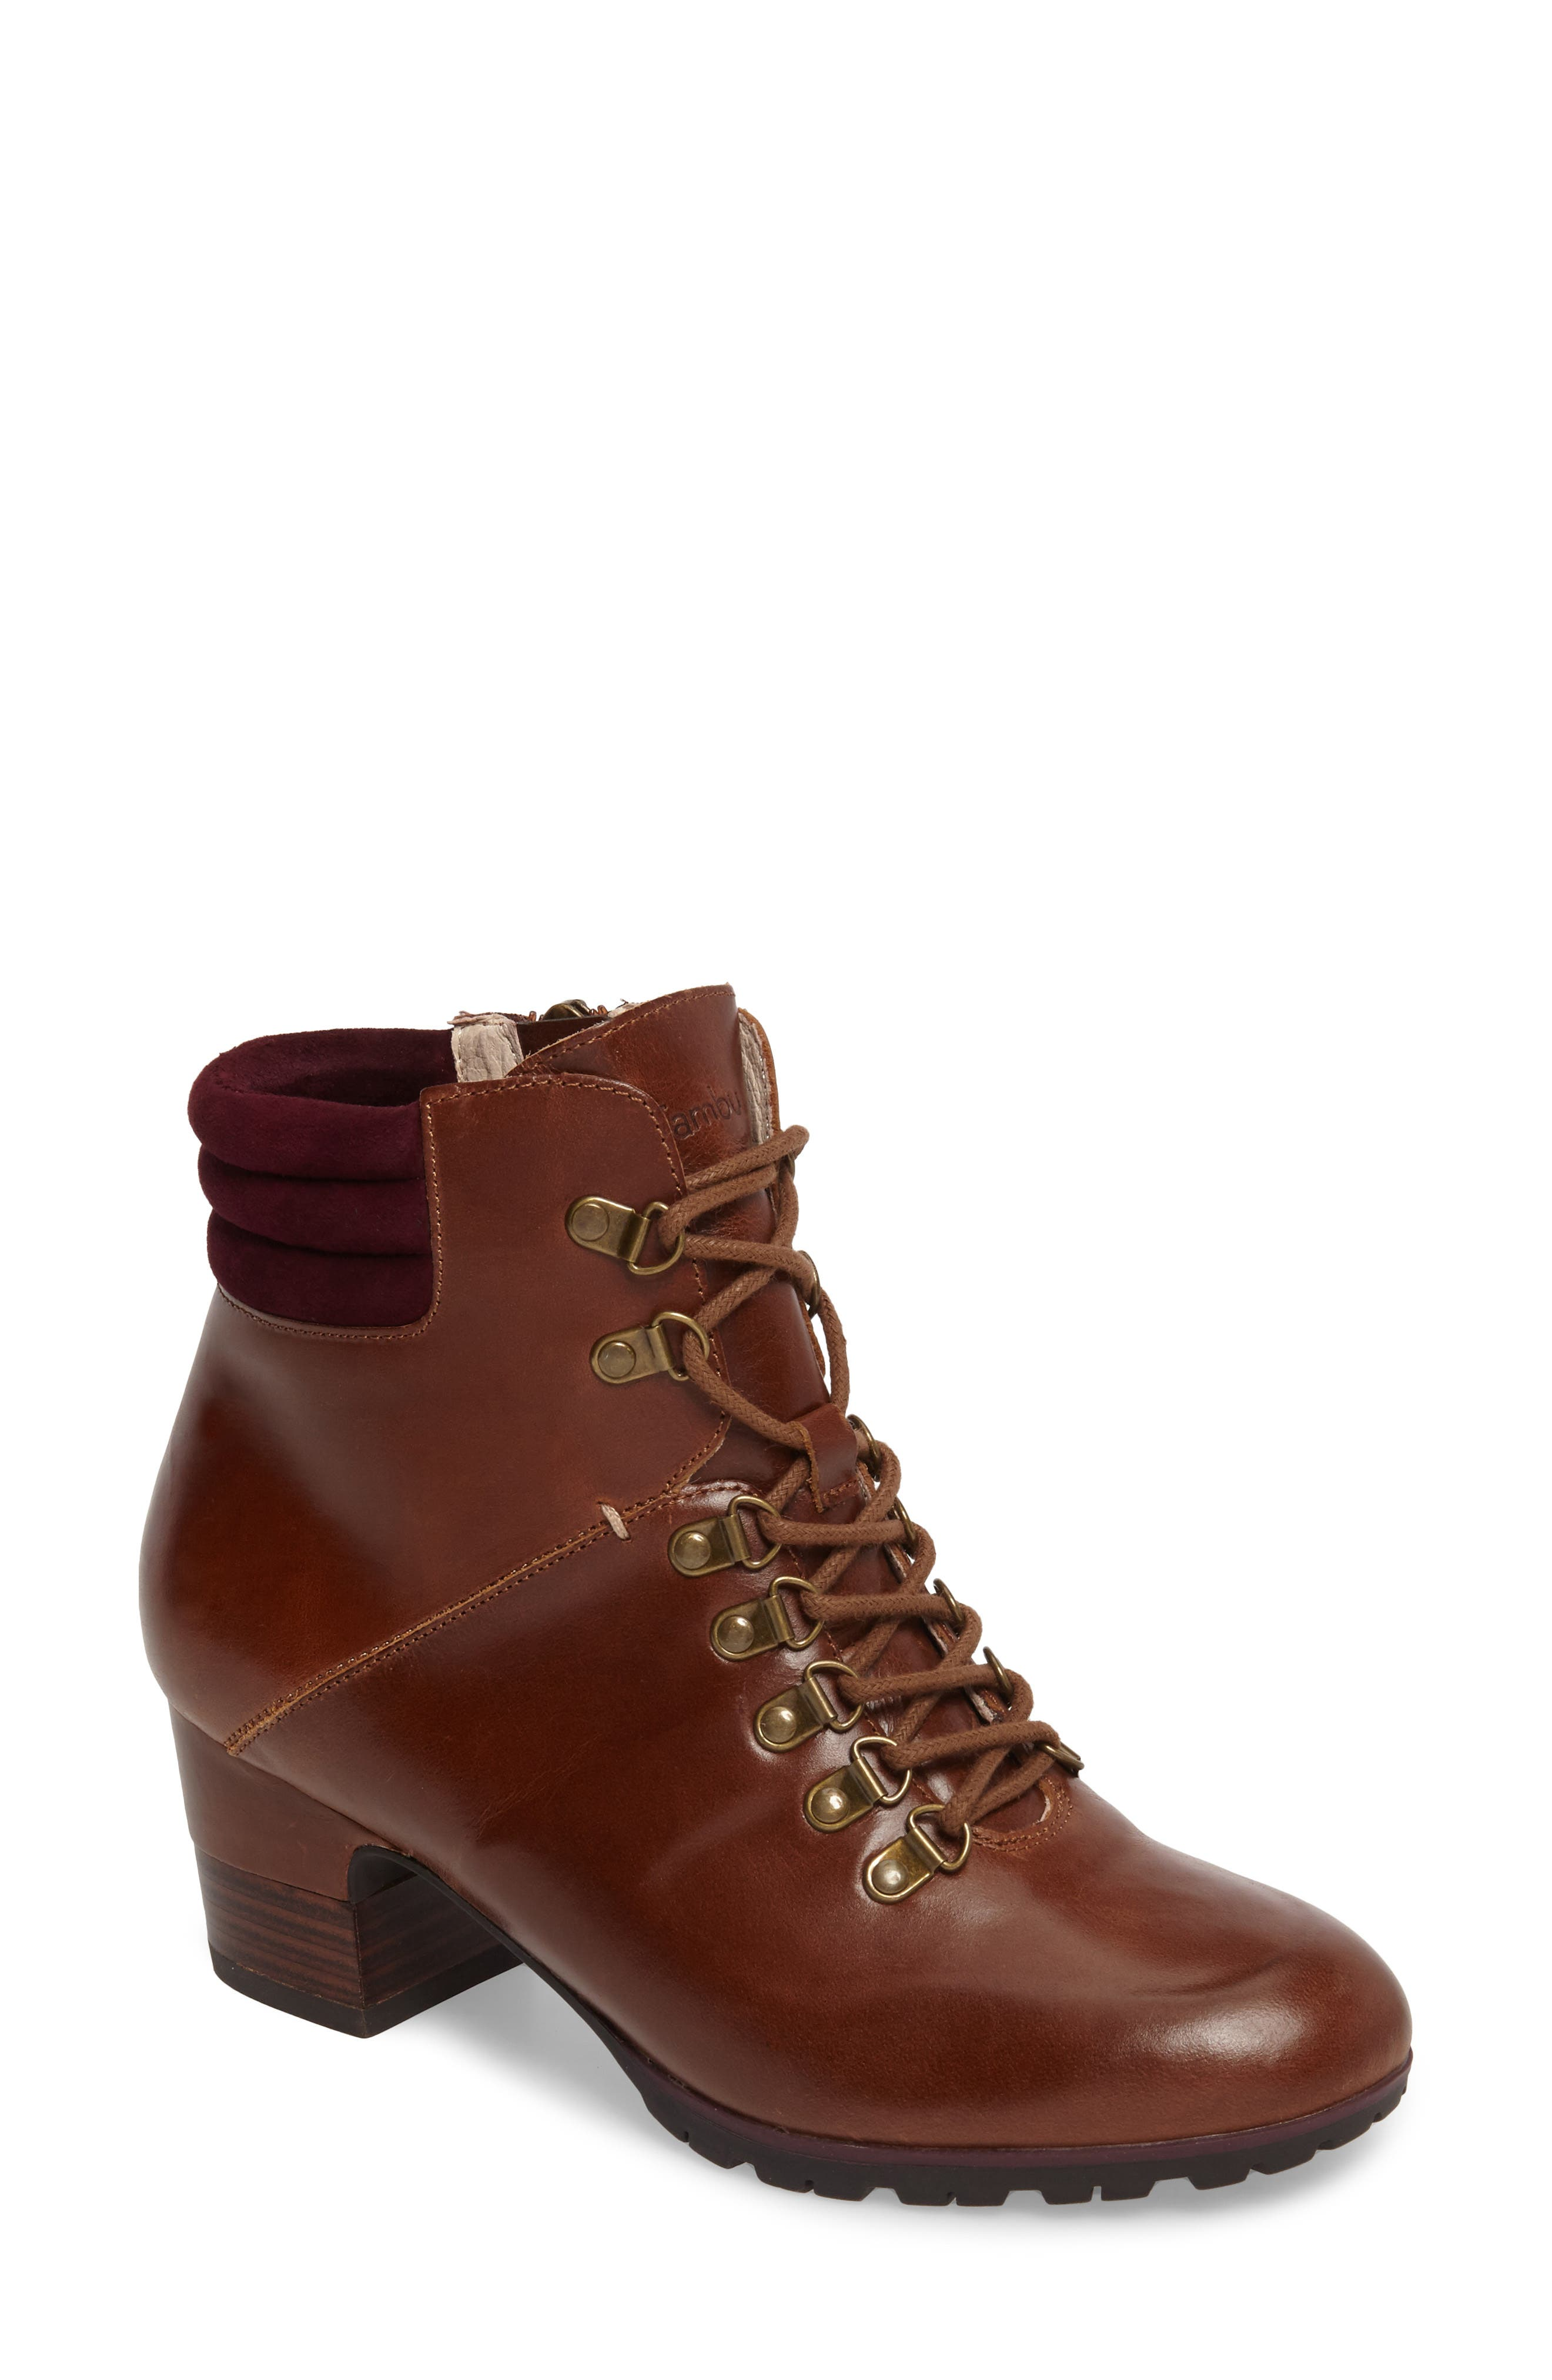 JAMBU Burch Water Resistant Lace-Up Boot